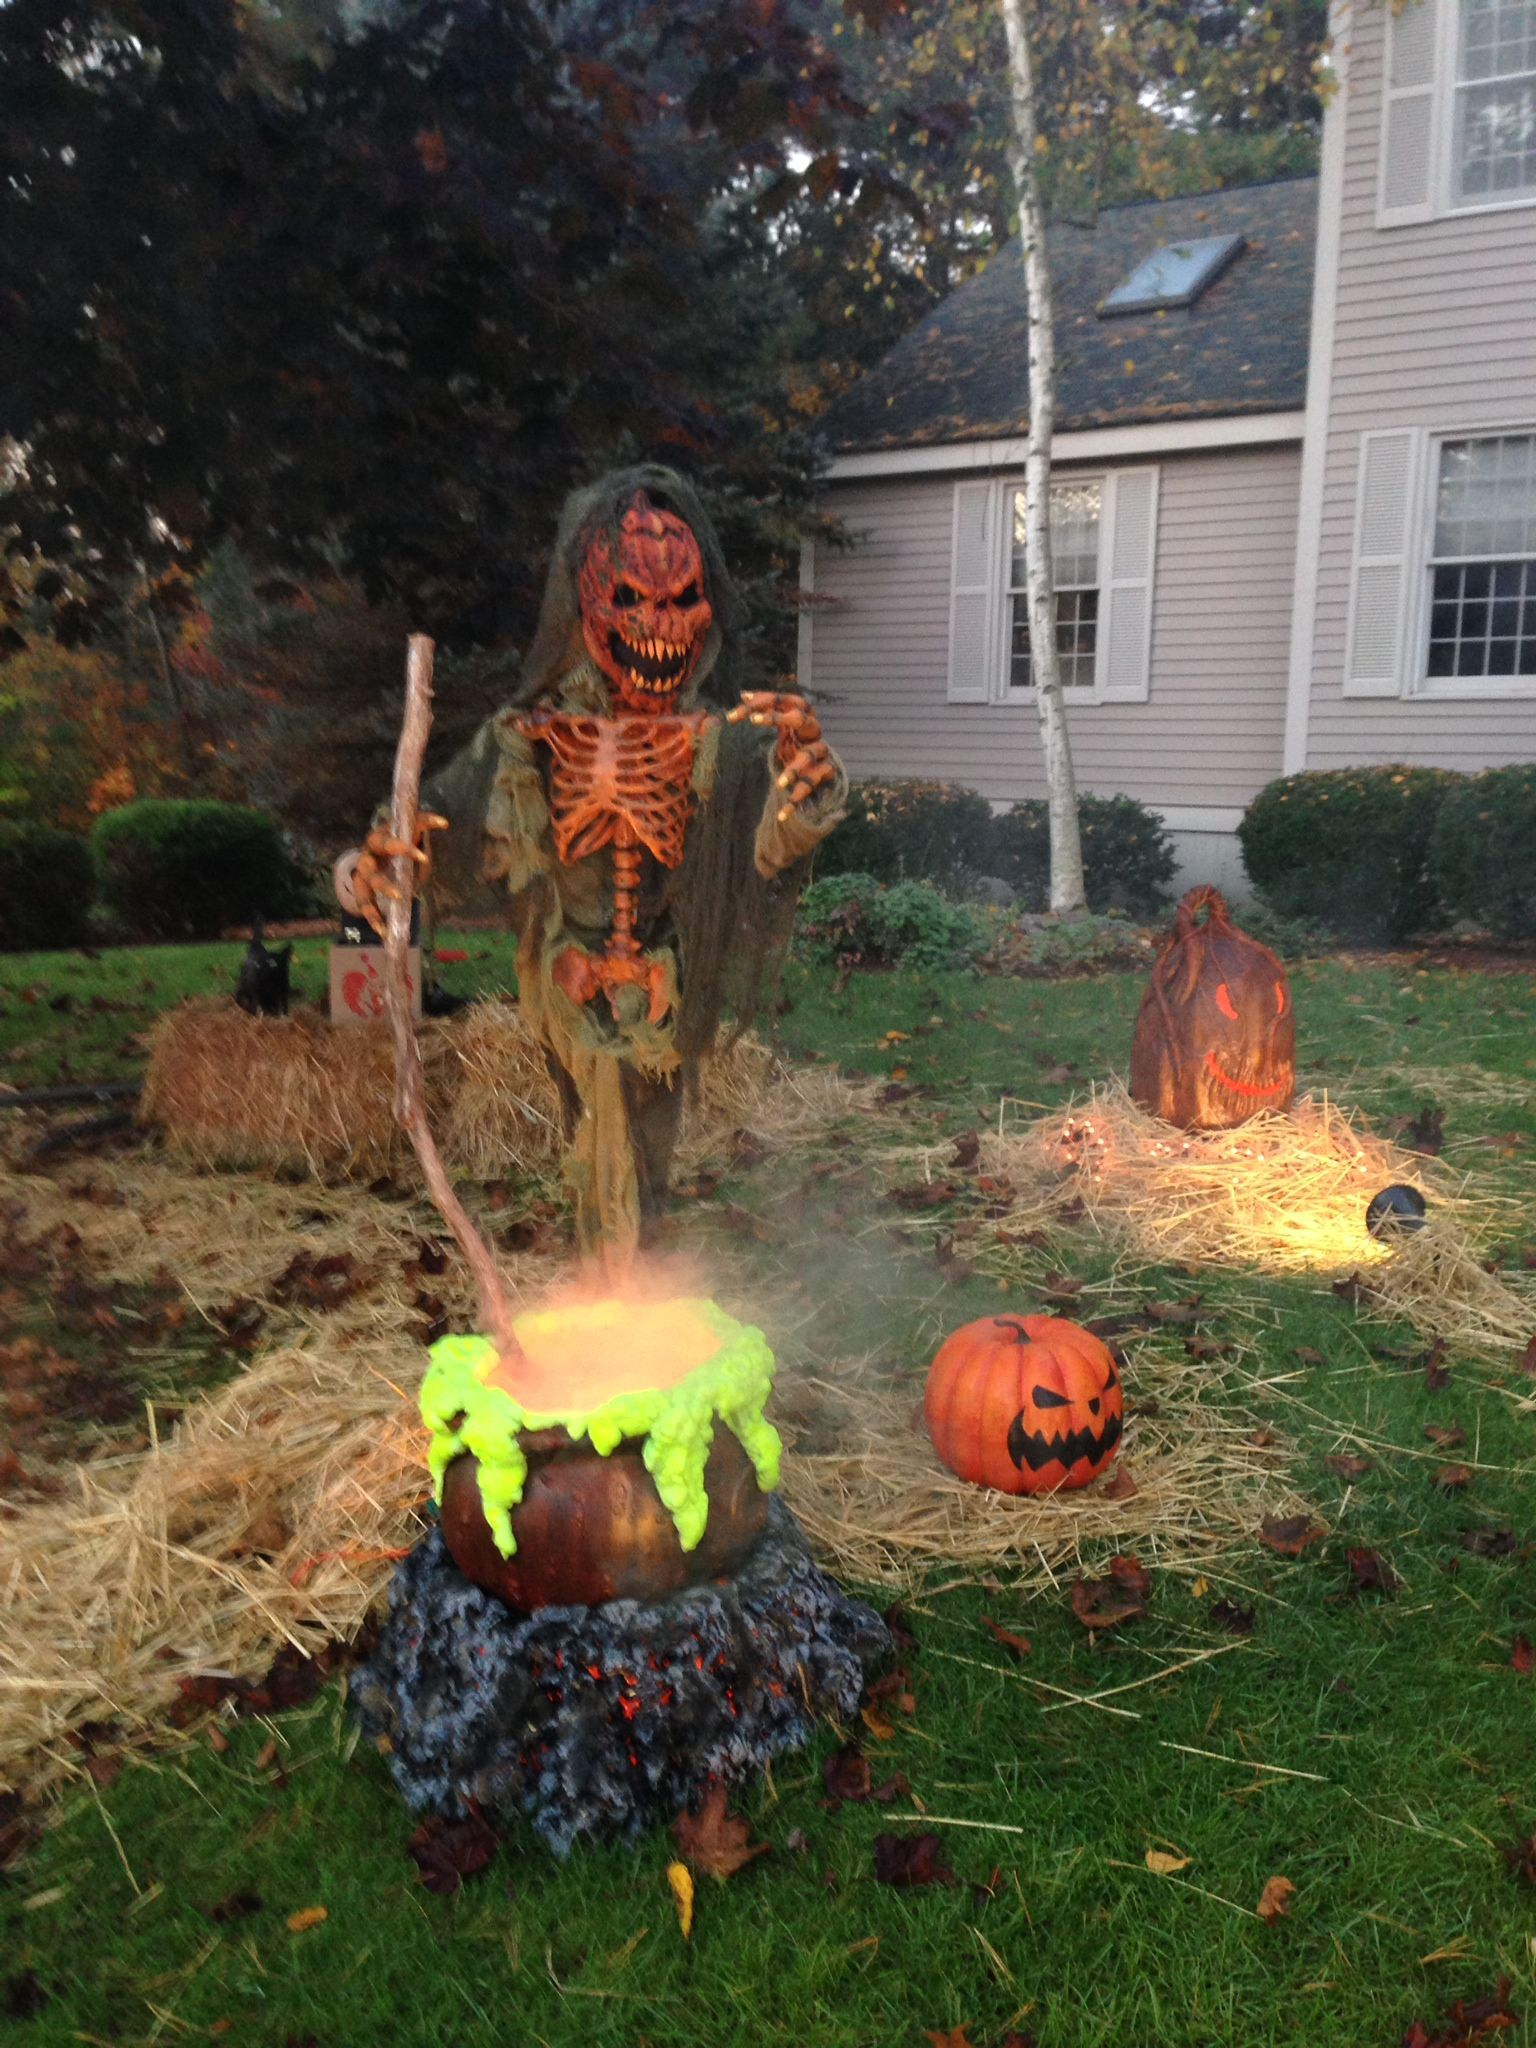 Pin by Thehauntedboro on Halloween DIY Yard Decorations Pinterest - Halloween Graveyard Decorations